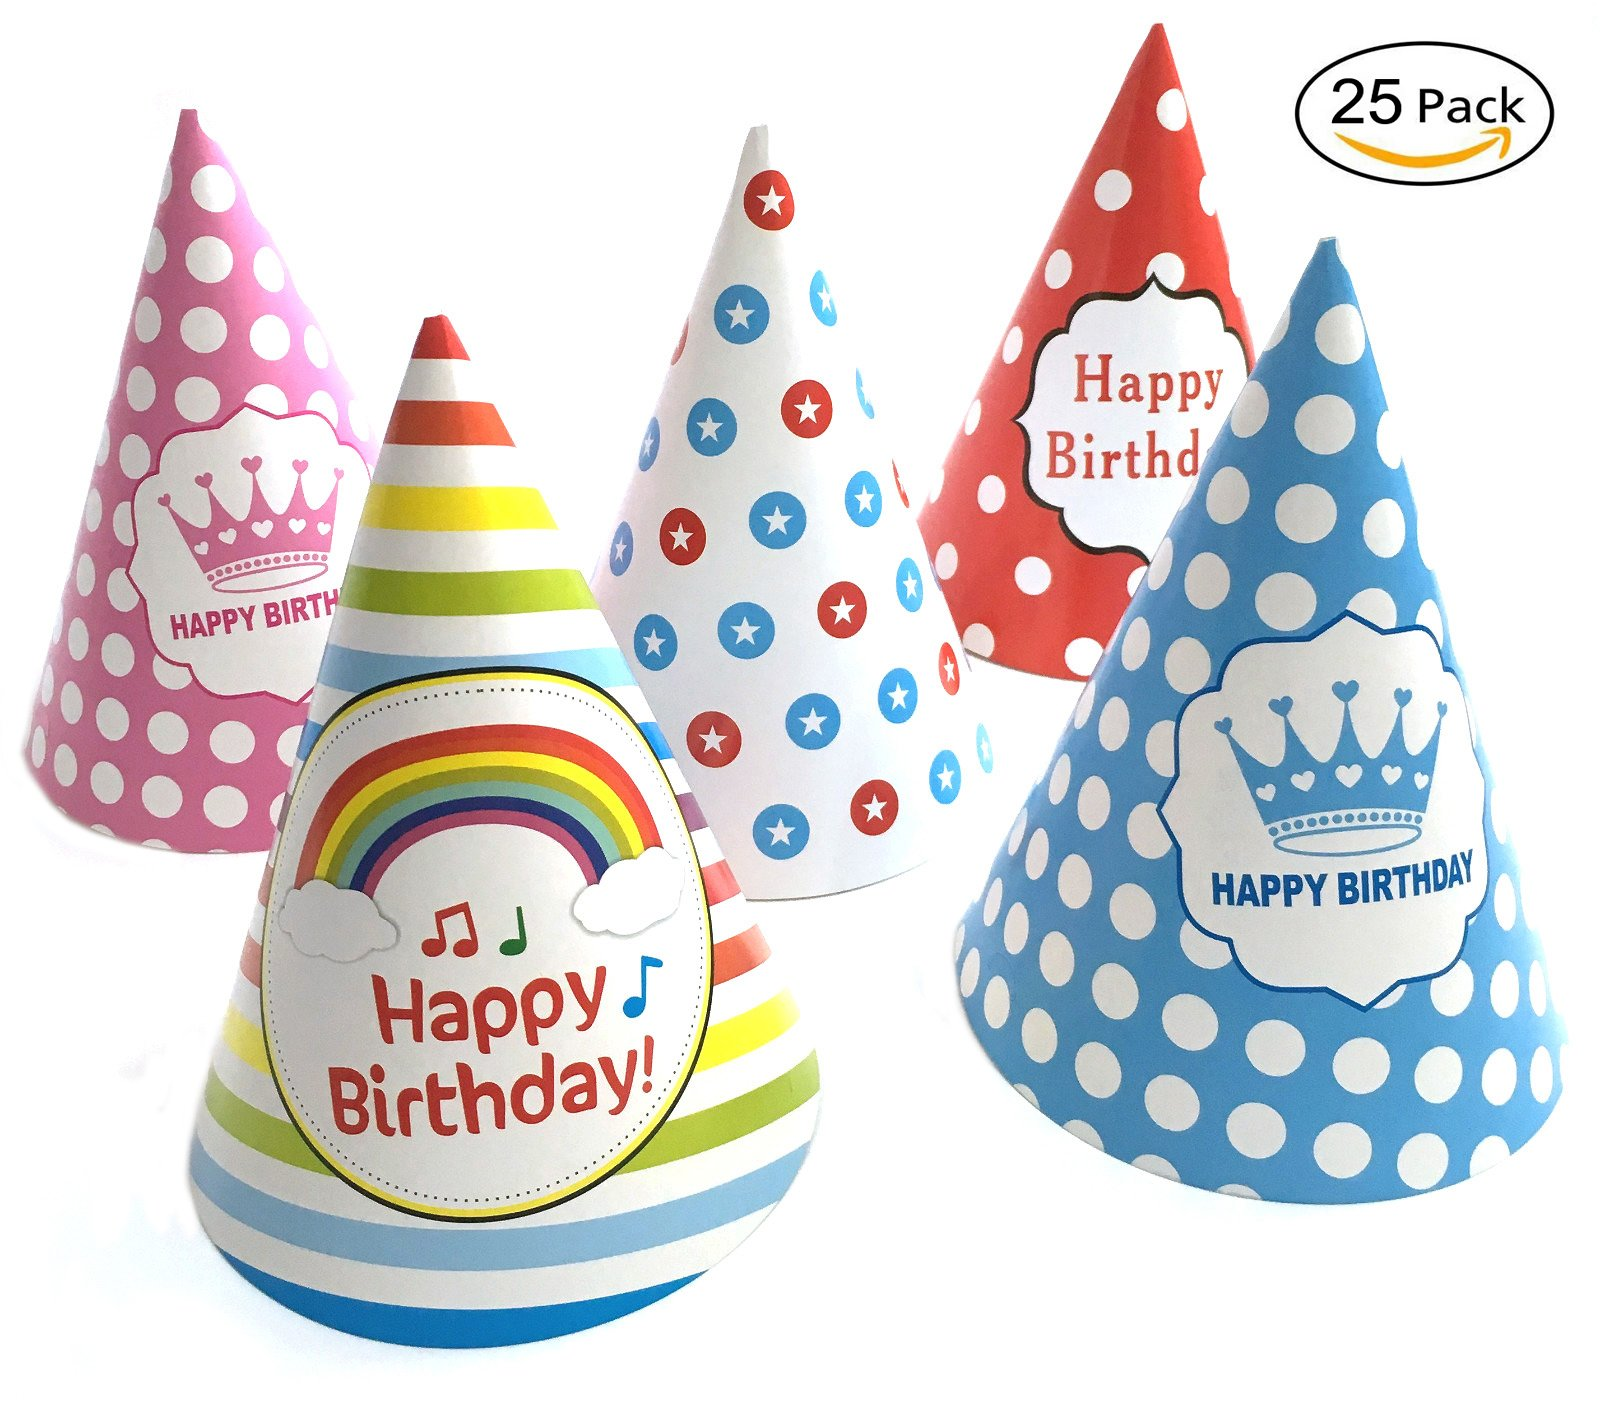 25 pcs Birthday Party Hat(Includes 5 Different Patterns)